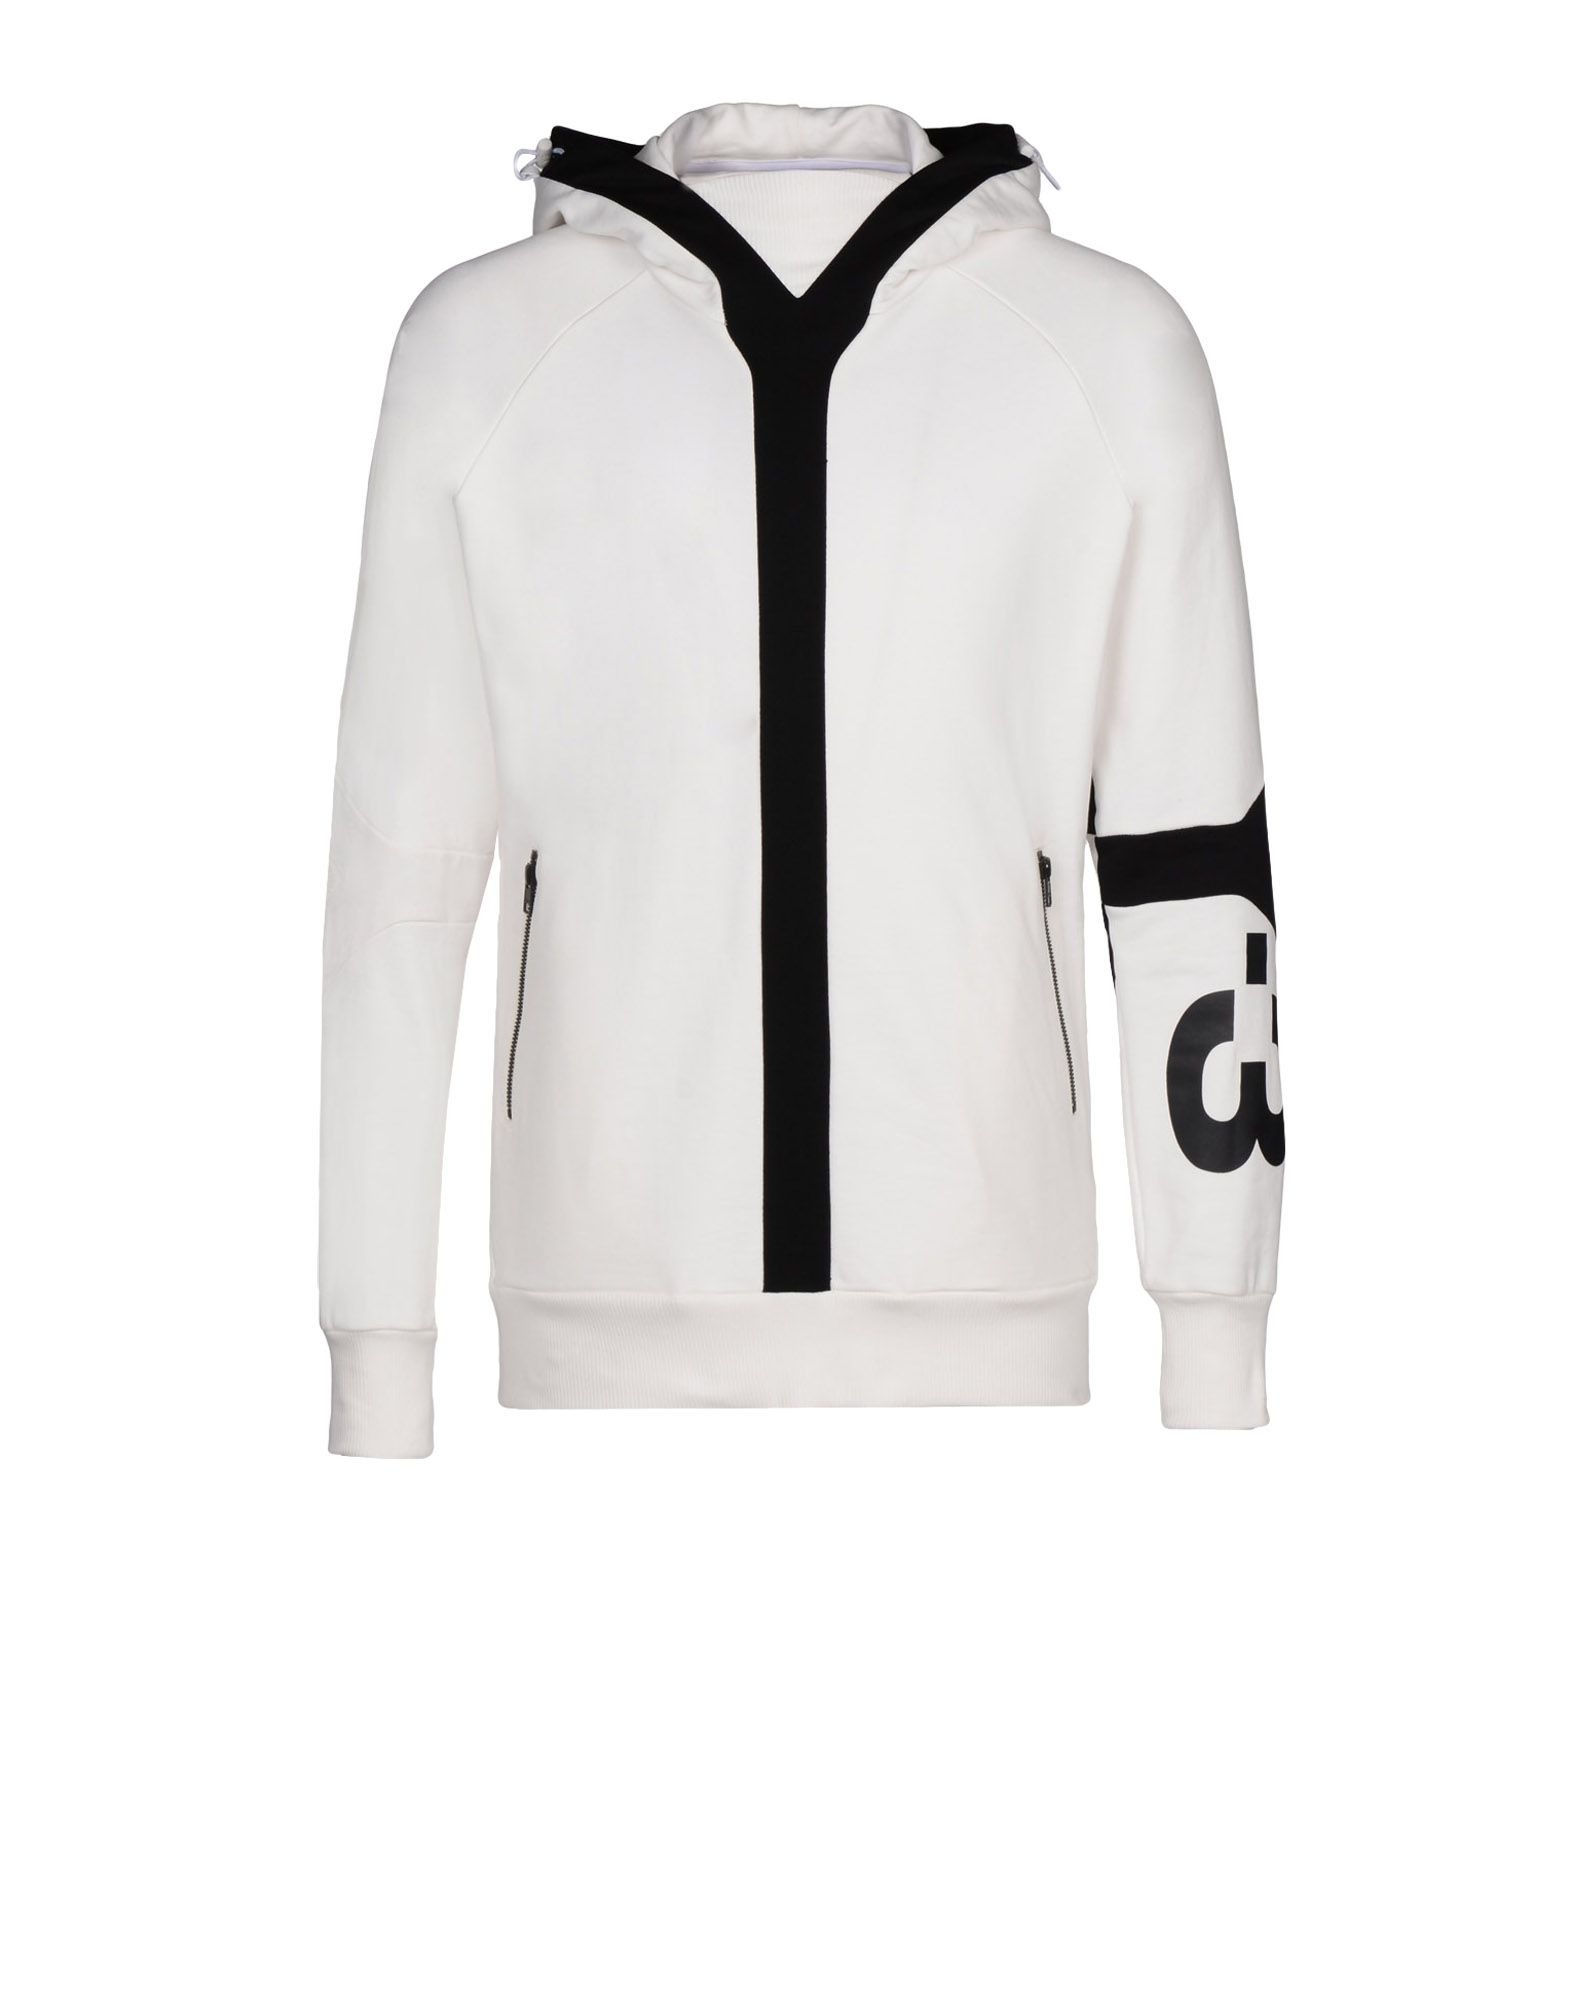 Y 3 LOGO HOODED SWEATER for Men   Adidas Y-3 Official Store